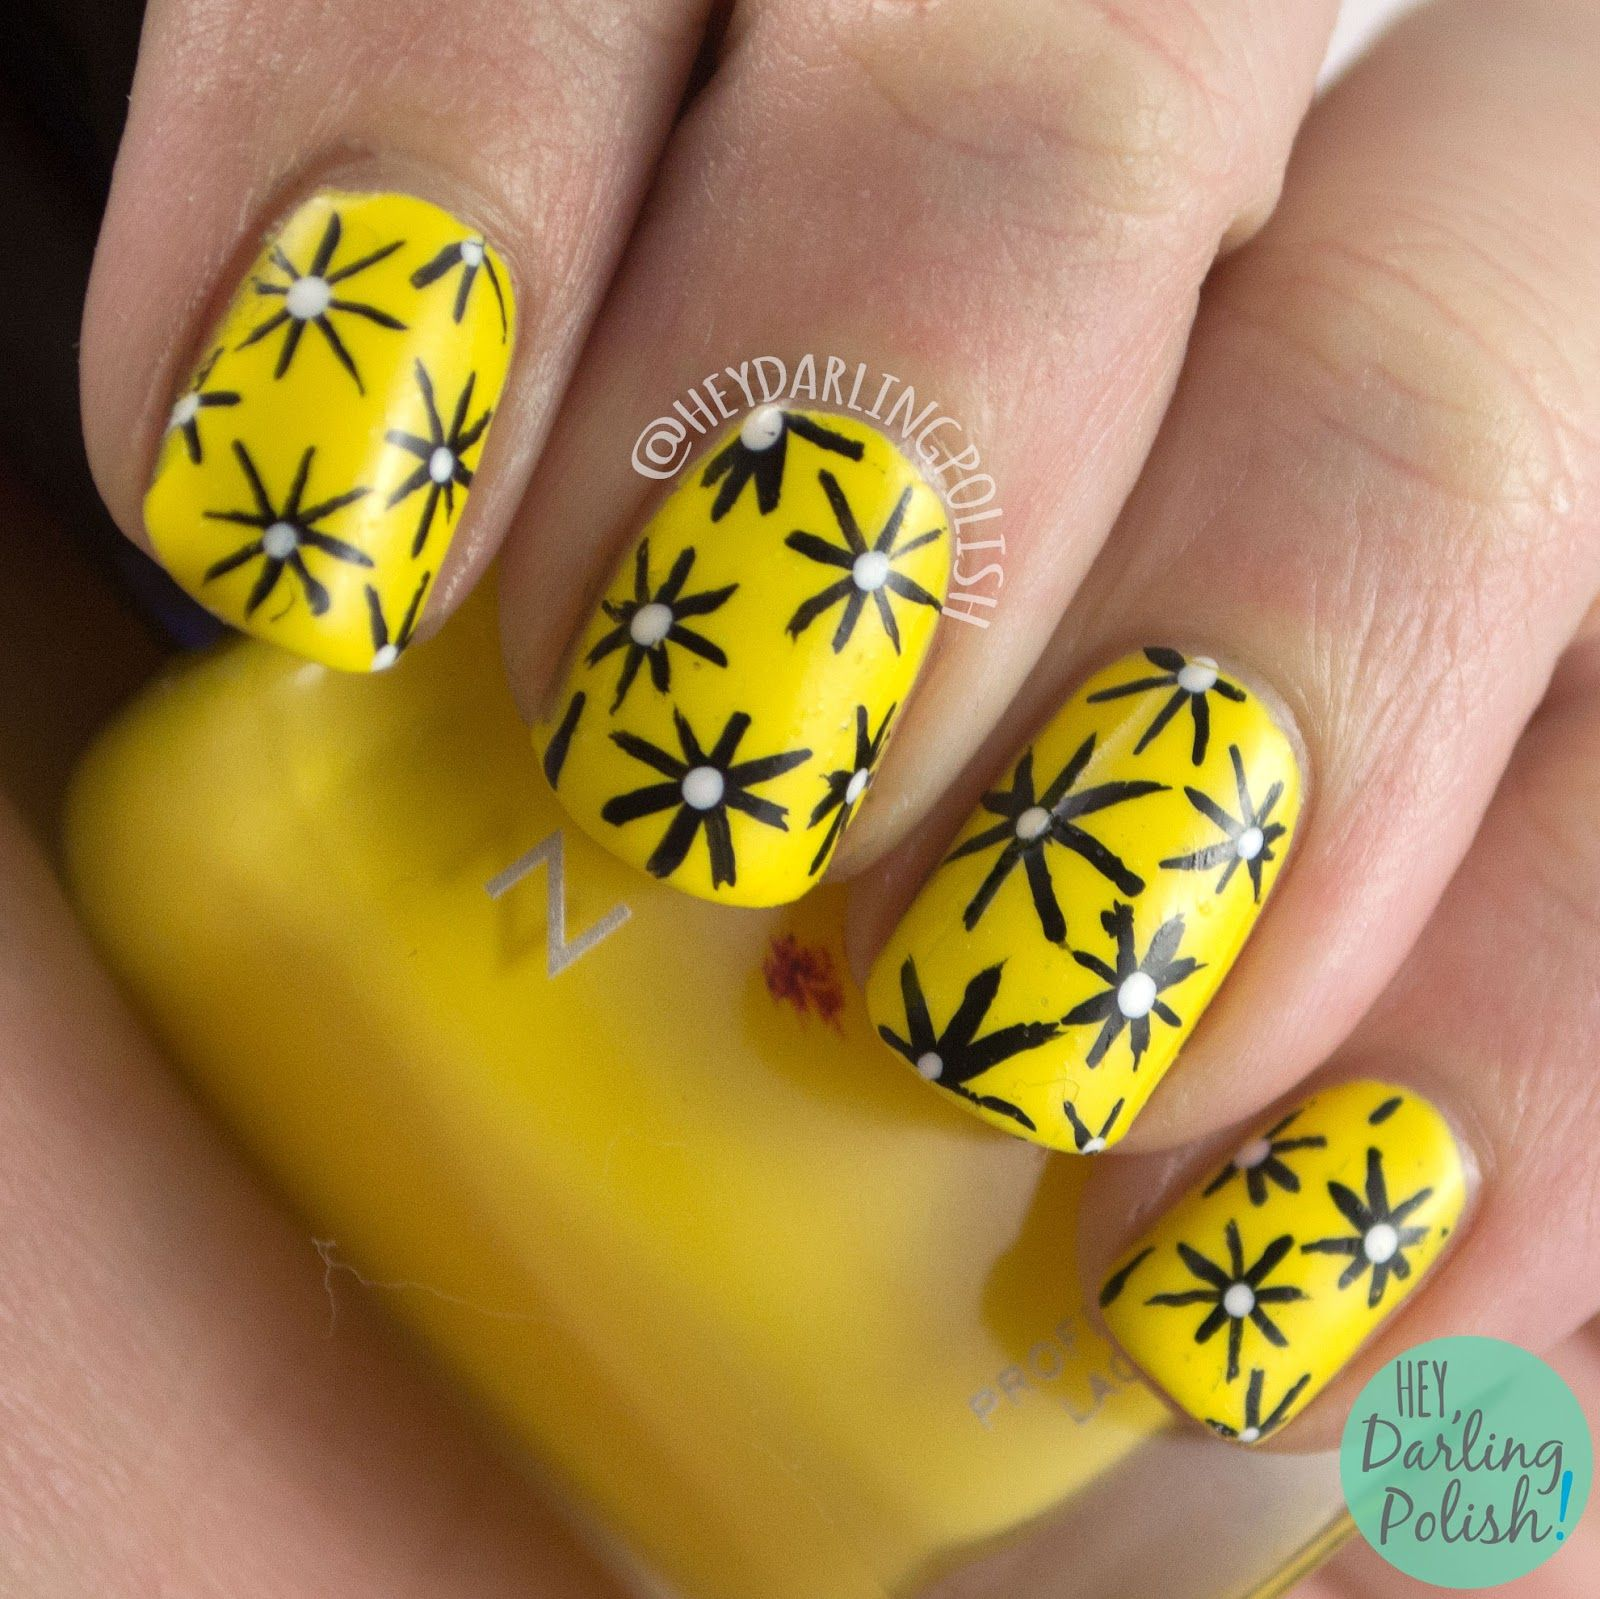 Hey, Darling Polish!: The Nail Challenge Collaborative - Fashion #4 ...